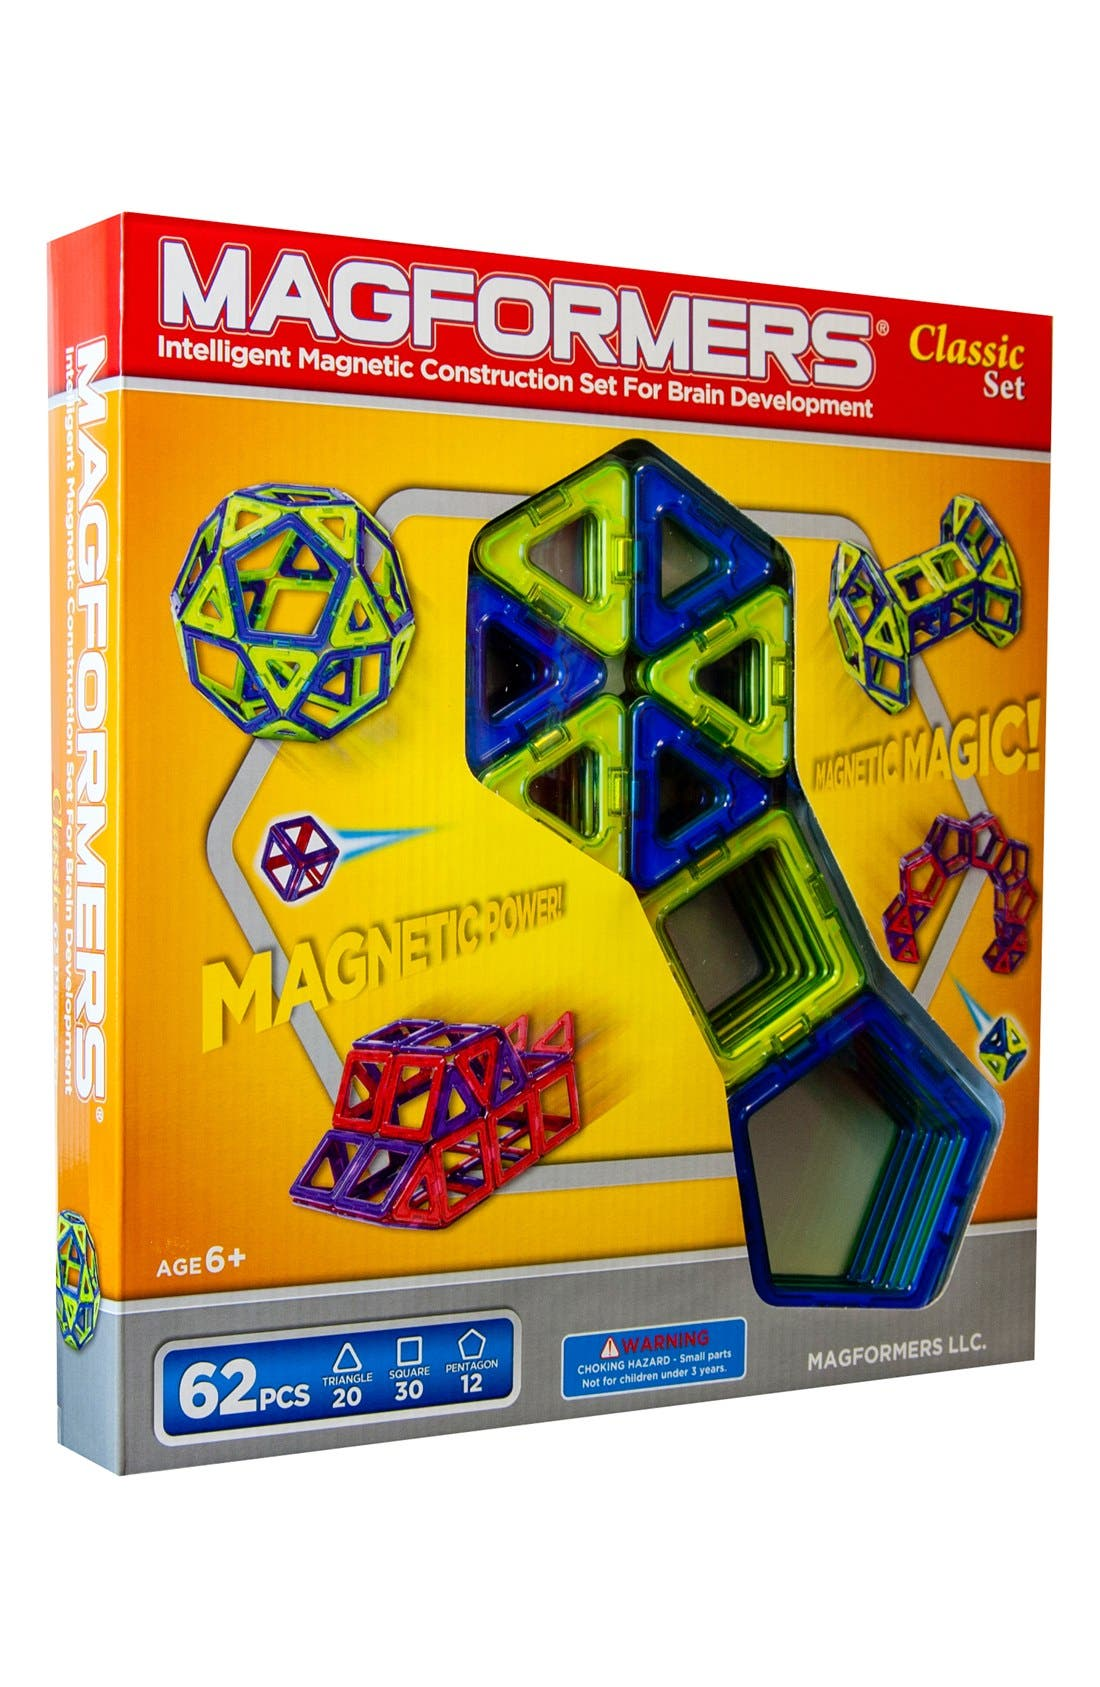 Magformers 'Classic' Construction Set